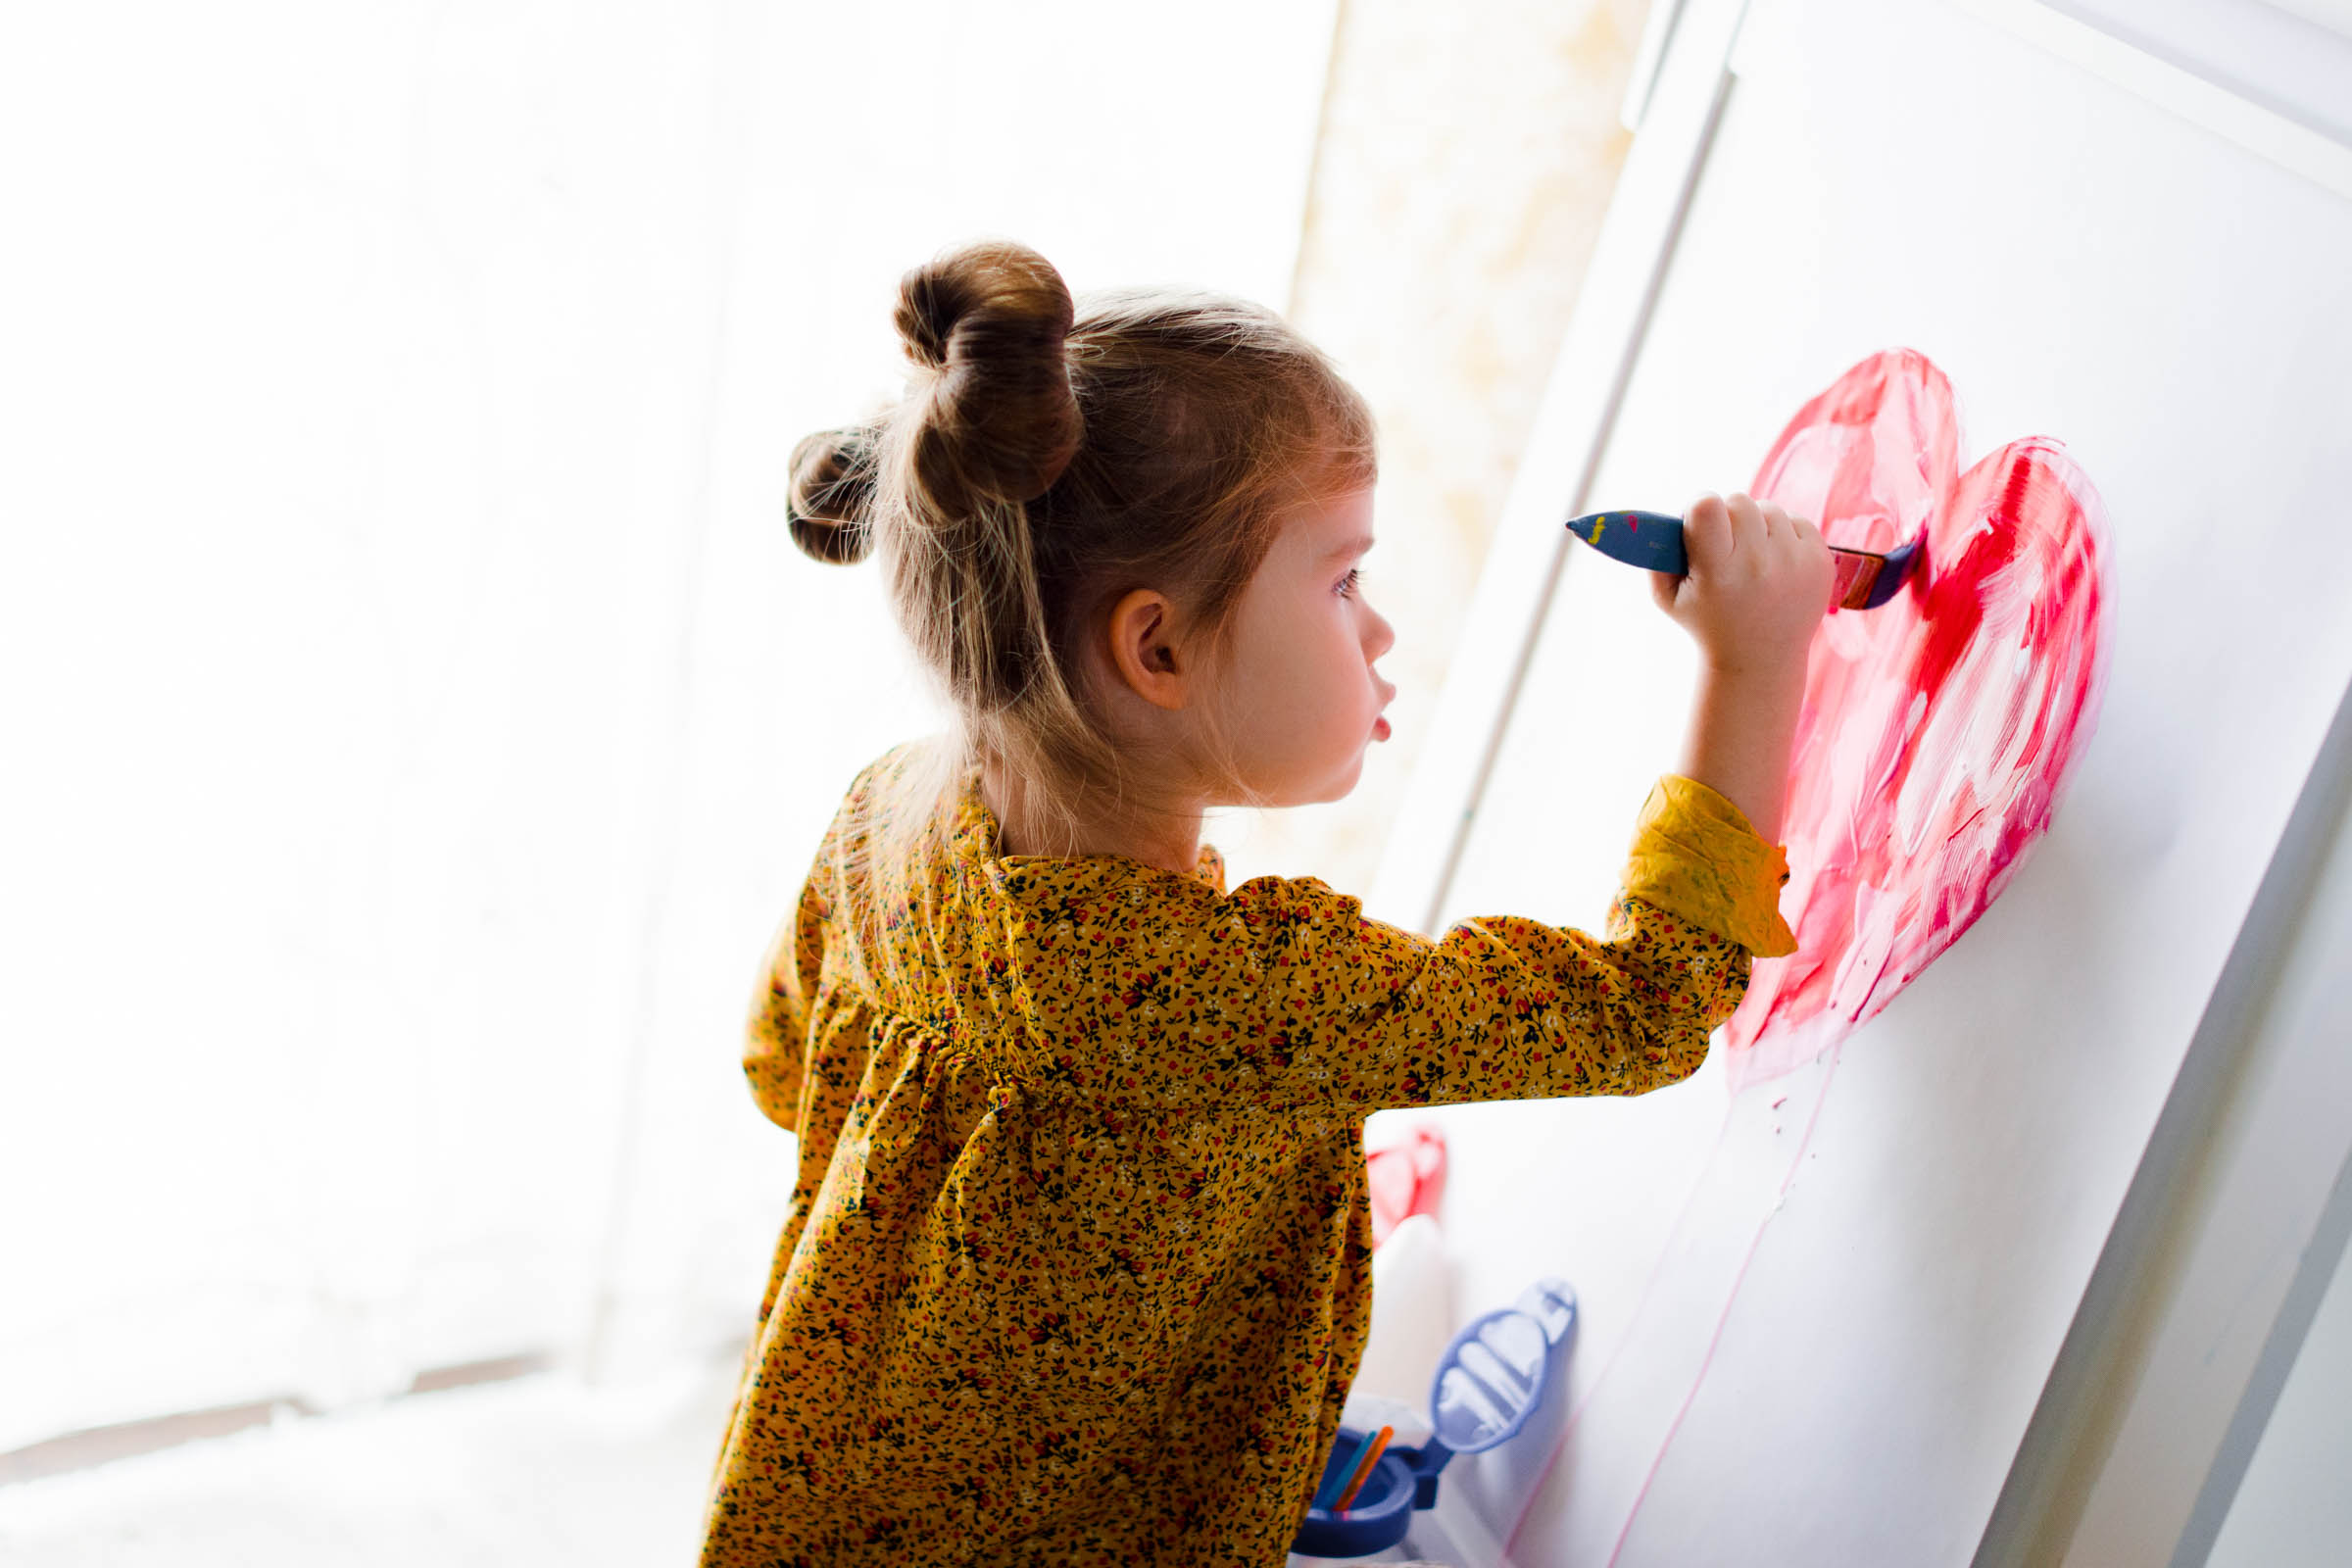 Kirsten-Smith-Photography-Valentine's-Day-Kids-Painting-4.jpg